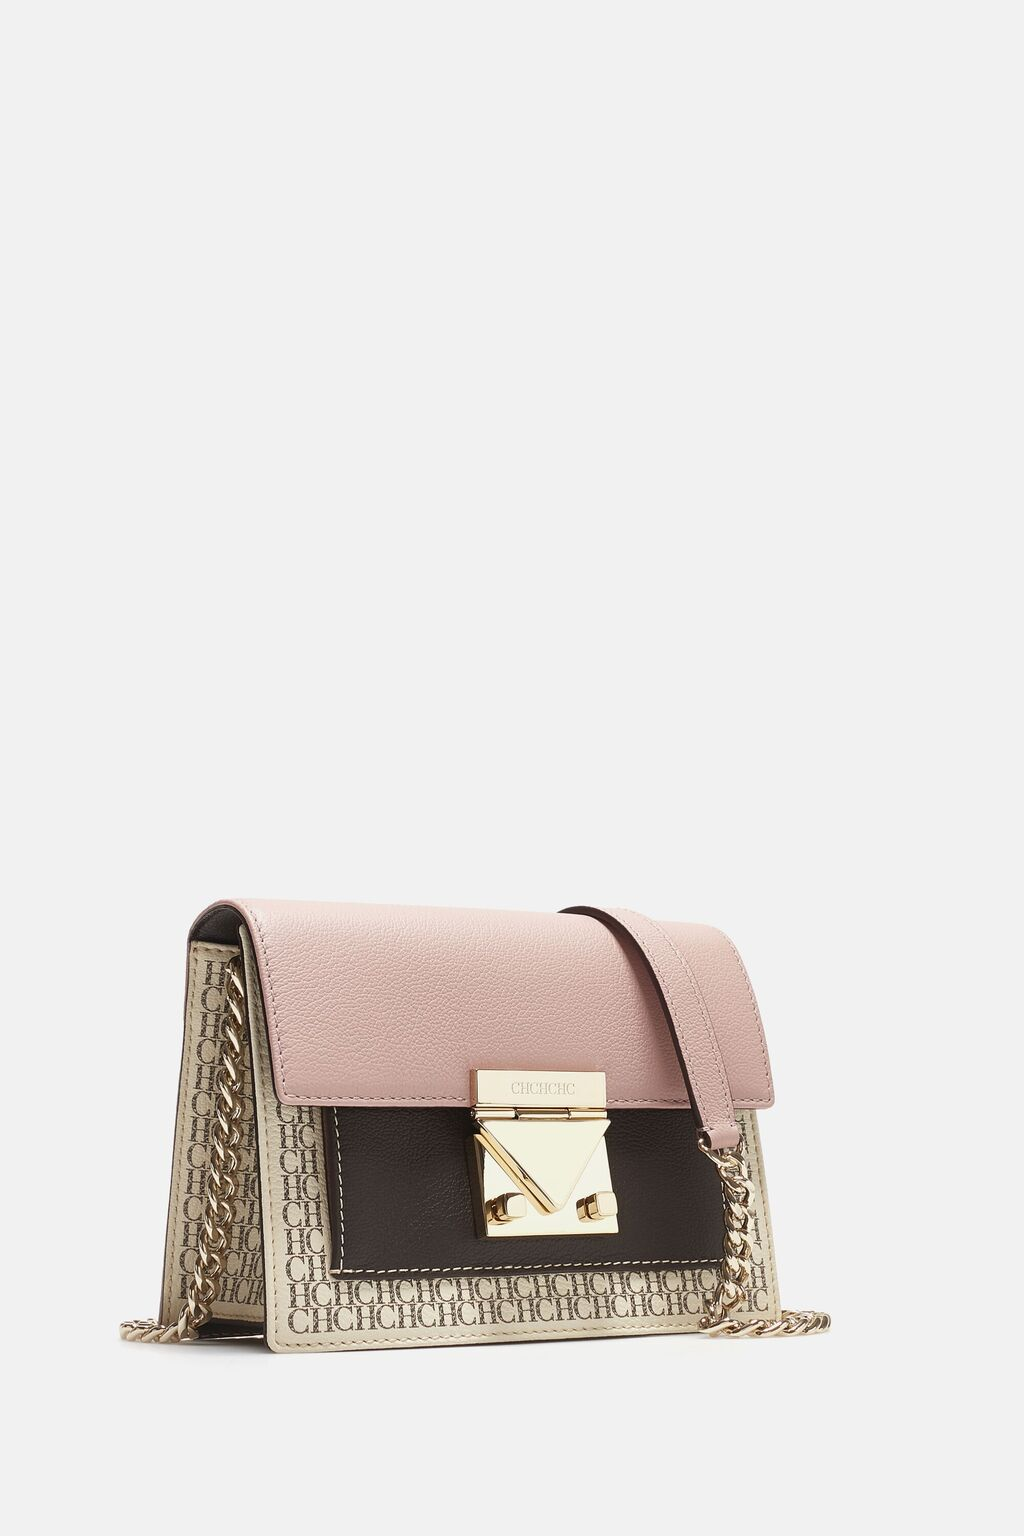 Carry on Bandoulière | Small cross body bag